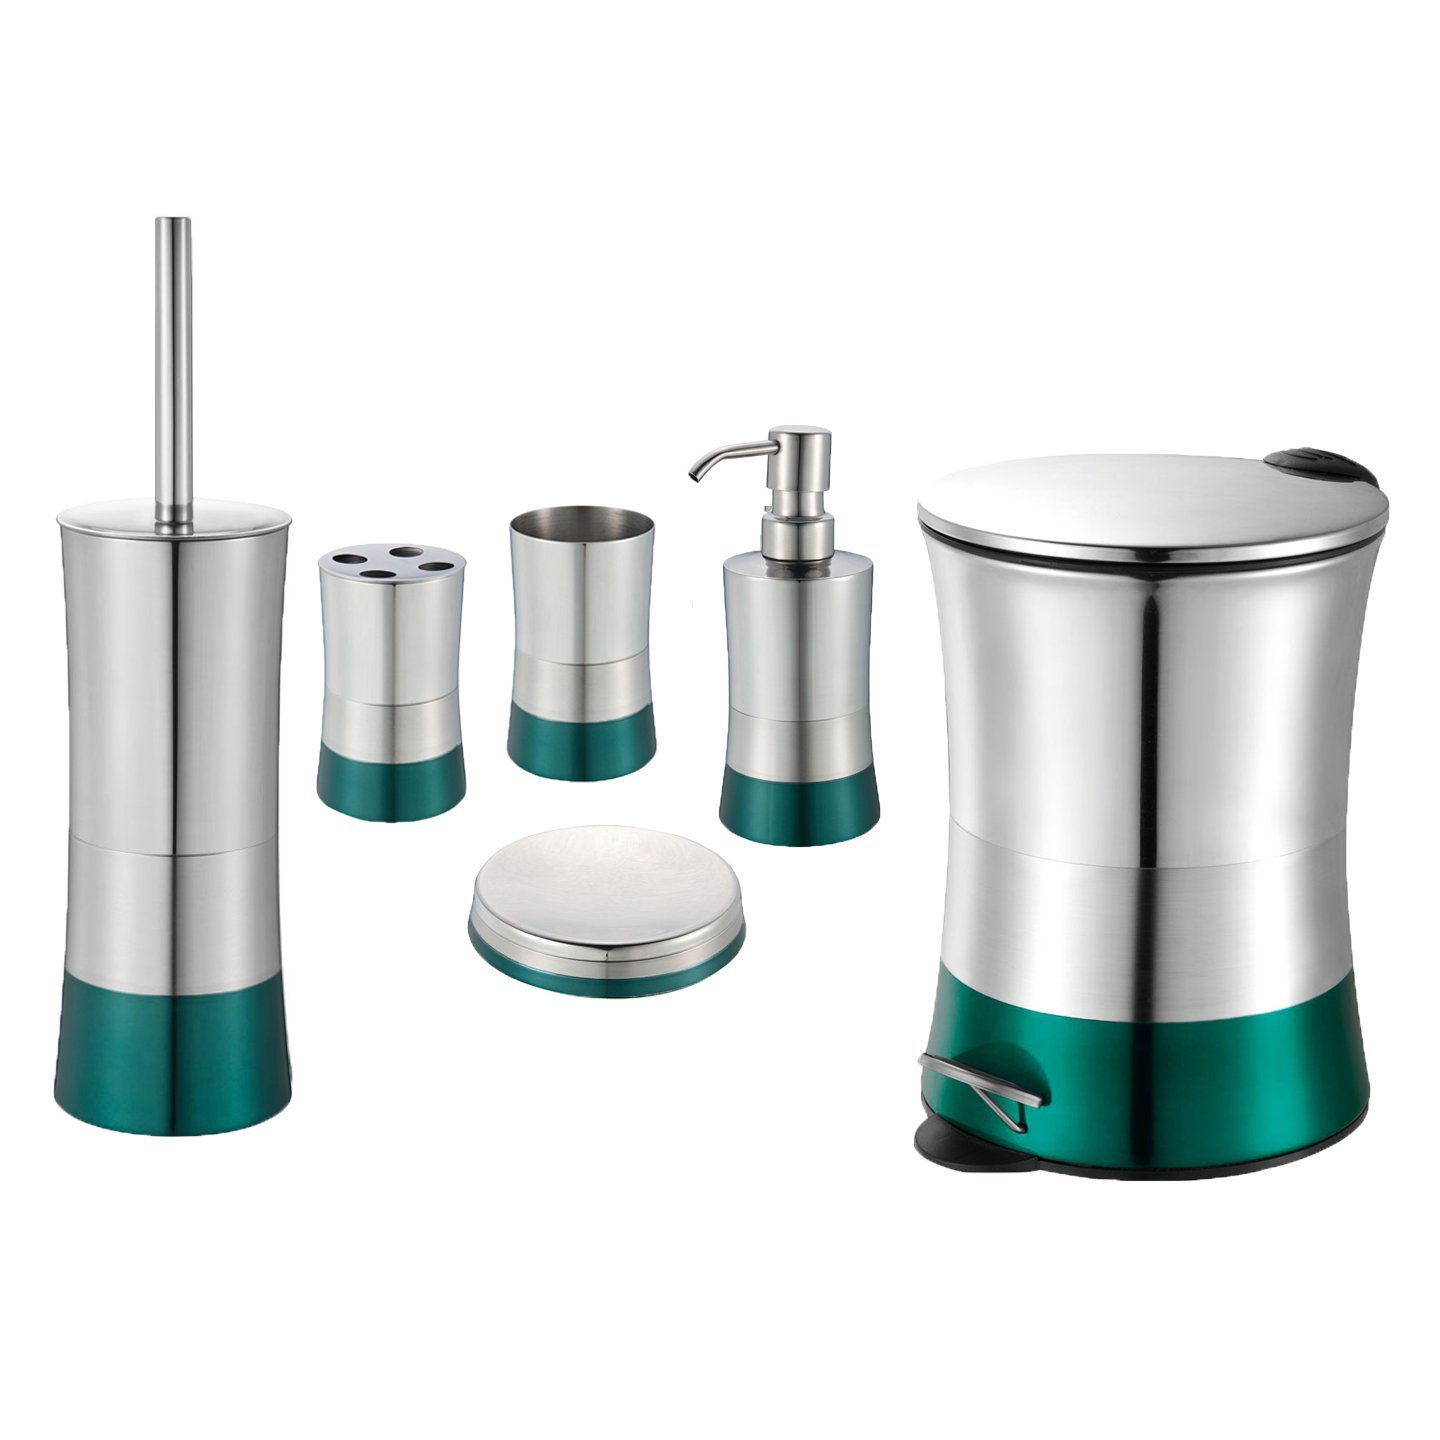 Merveilleux Teal 6 Piece Bathroom Accessory Set: Stainless Steel, Trash Bin, Toilet  Brush, Toothbrush Holder, Tumbler, Soap Dish And Dispenser (6 Piece Set  With Soft ...